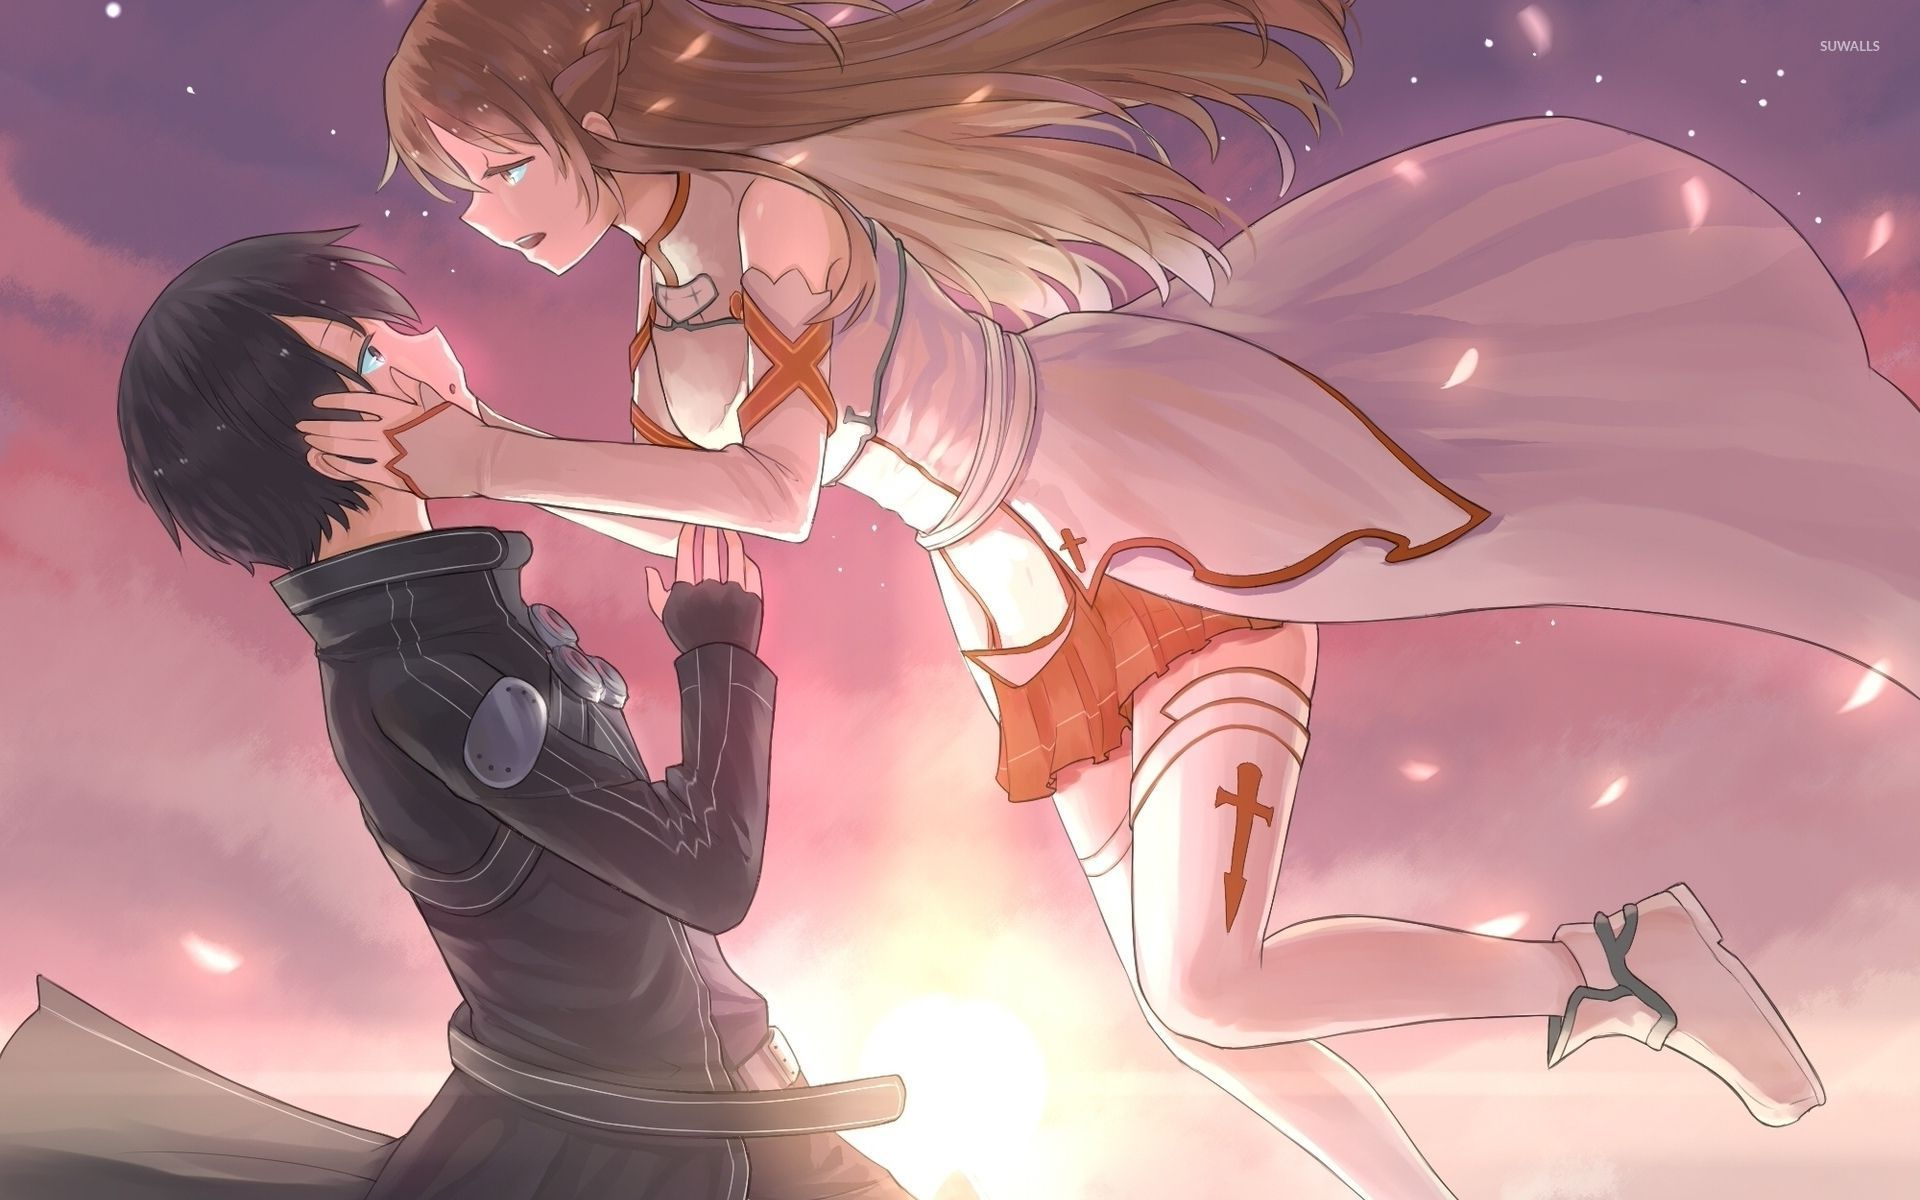 Foto Kirito Dan Asuna kirito and asuna - sword art online wallpaper - anime